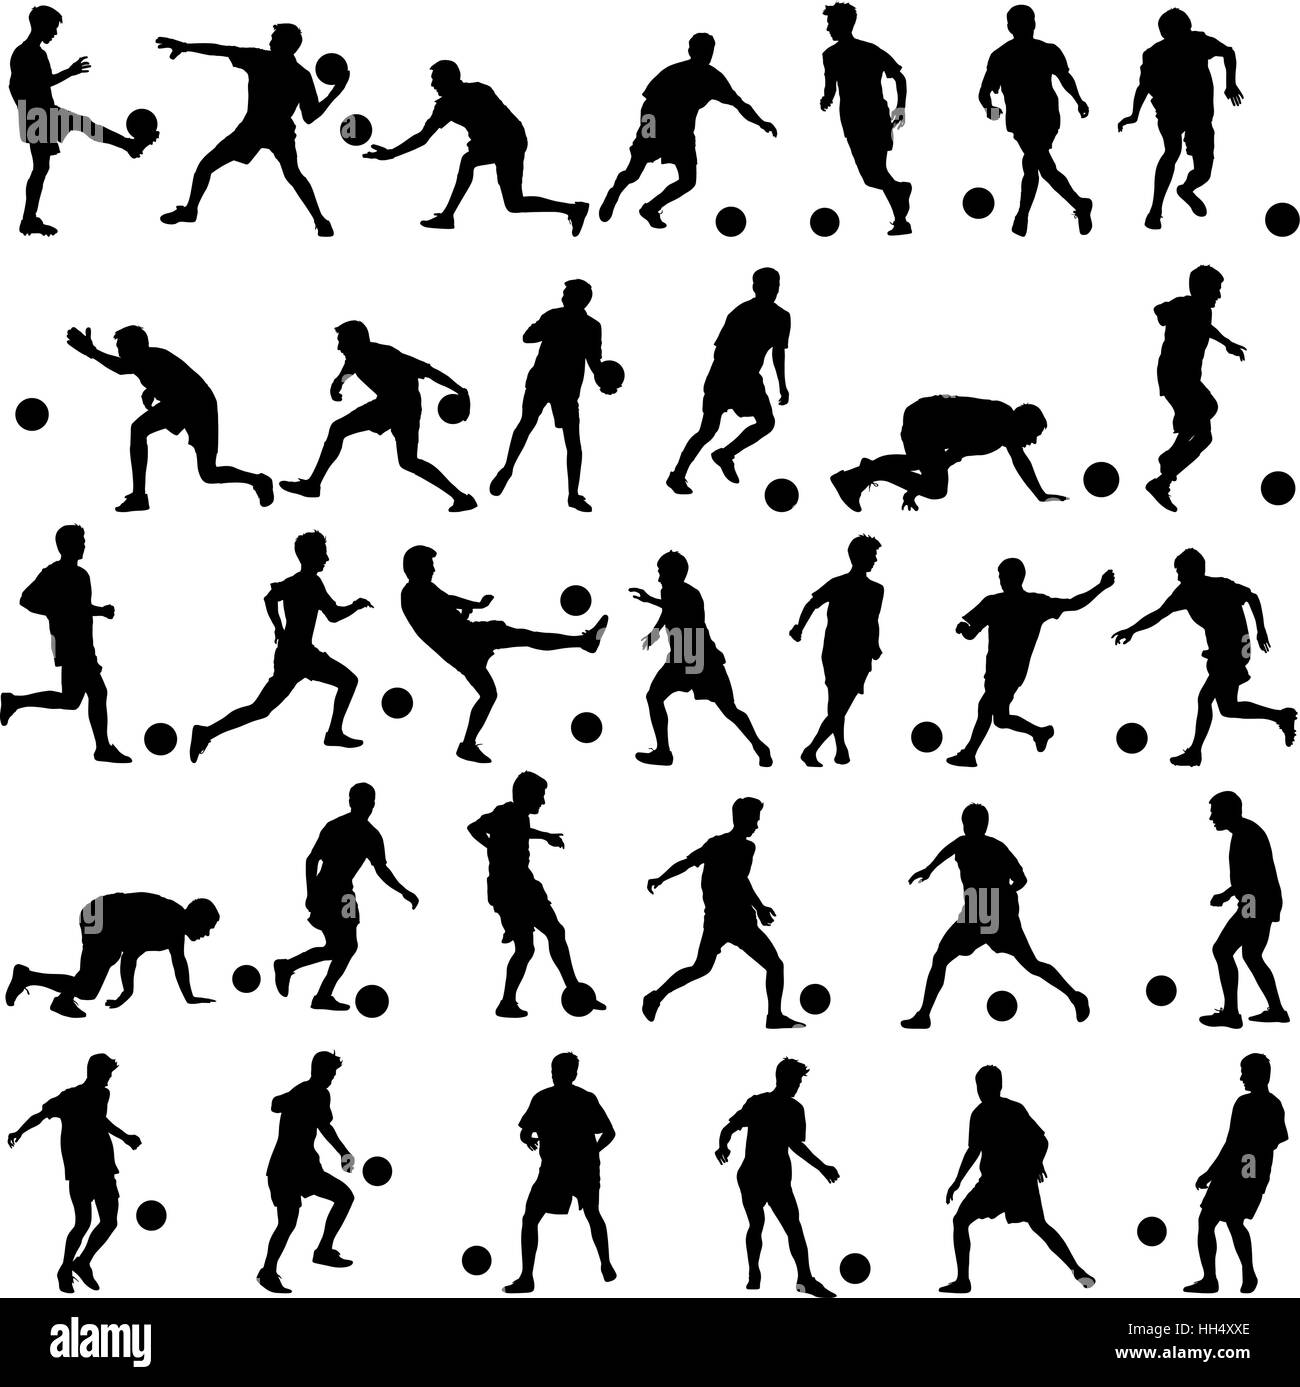 silhouettes of soccer players with the ball. Vector illustration - Stock Vector